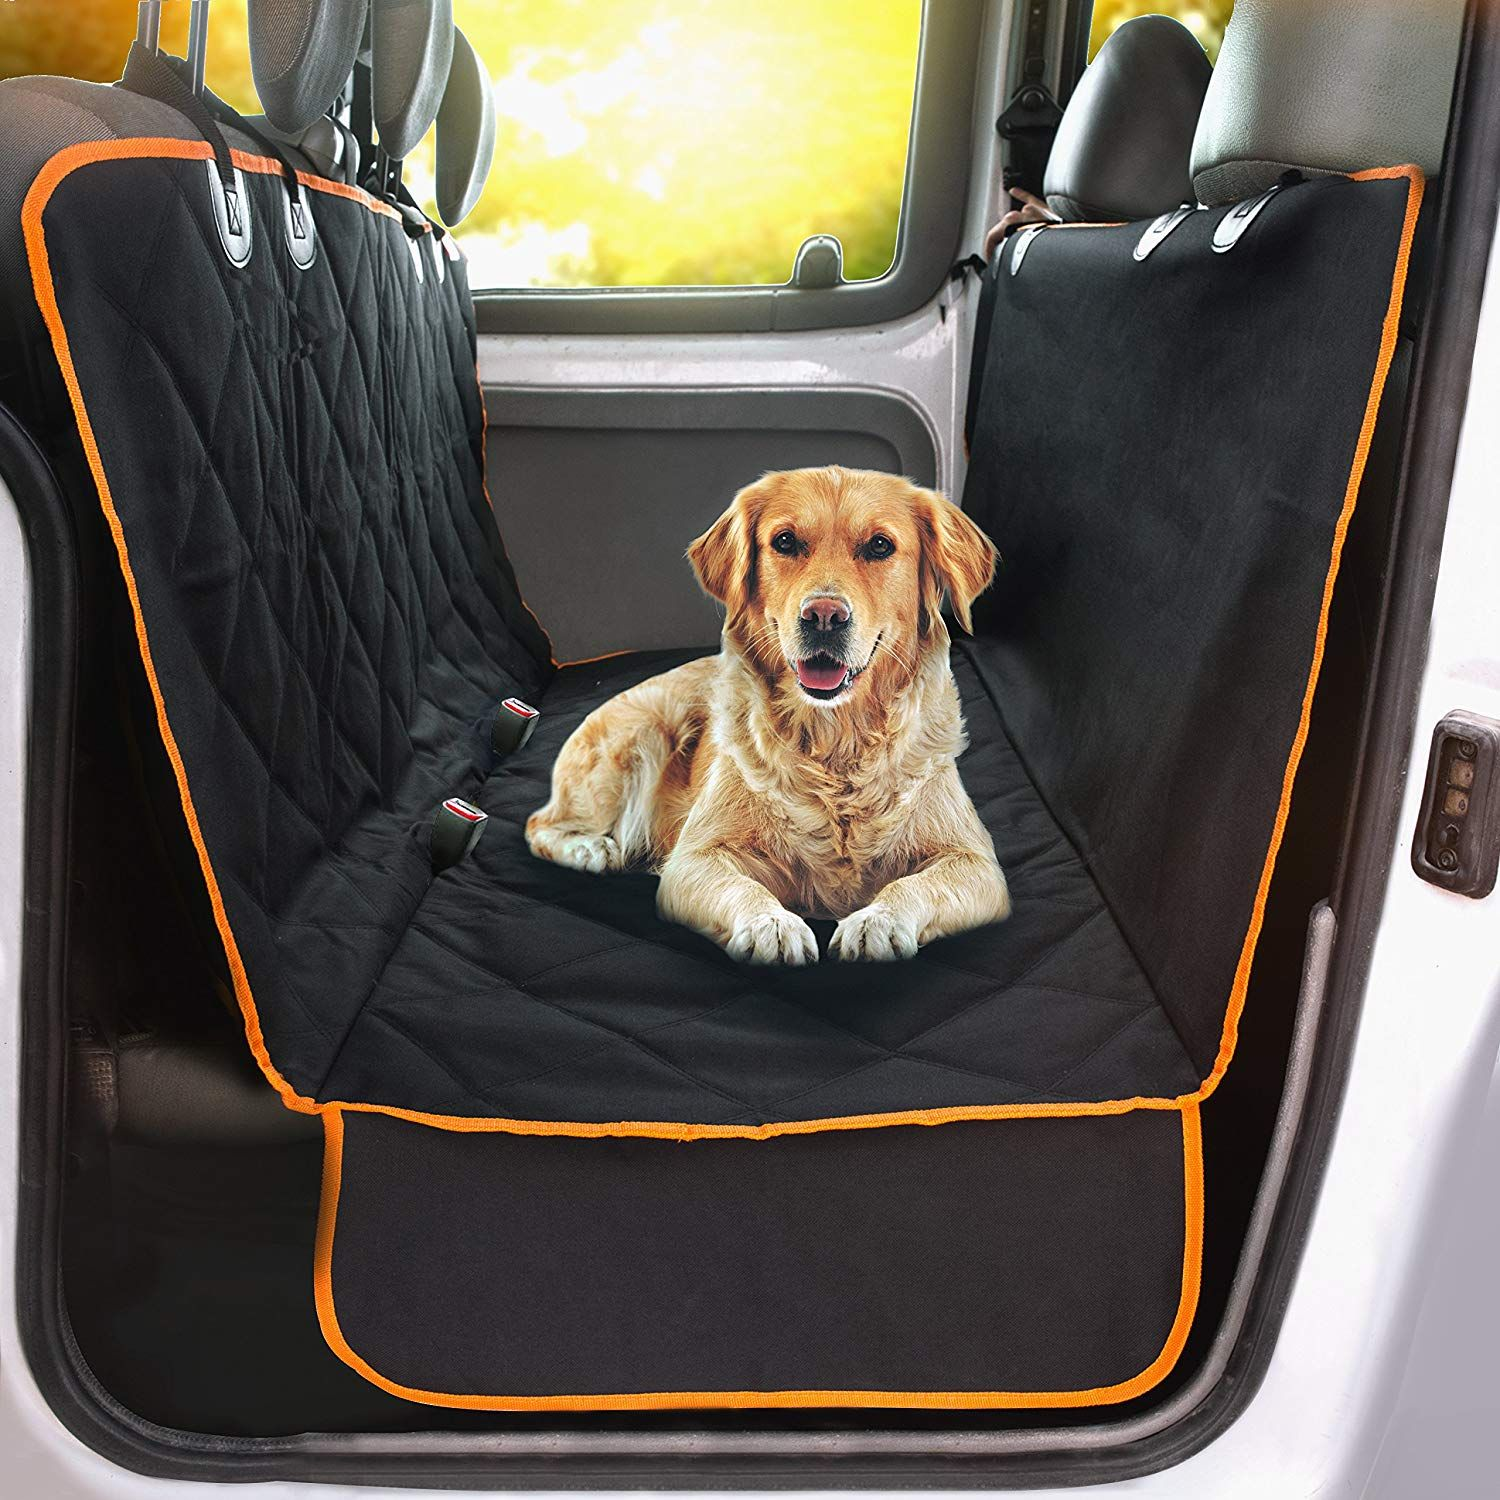 10 Dog Car Seat Covers to Keep Your Car Clean